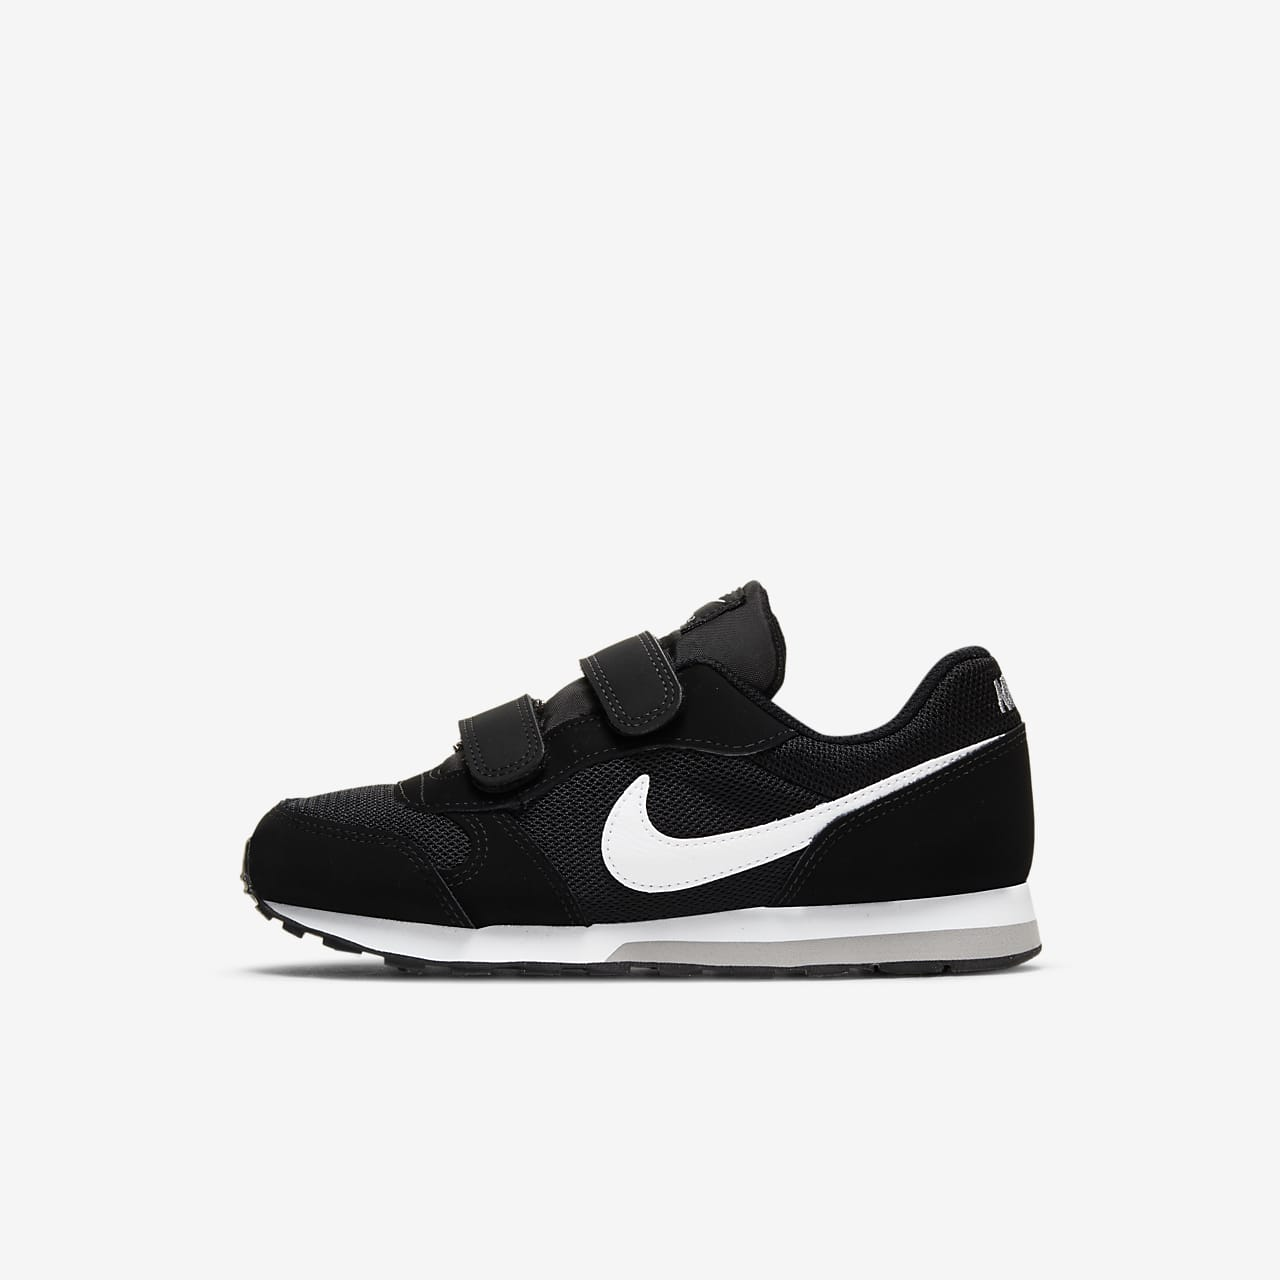 Be Md Nike Pour 2 Runner Enfant Chaussure Jeune g05wpwq